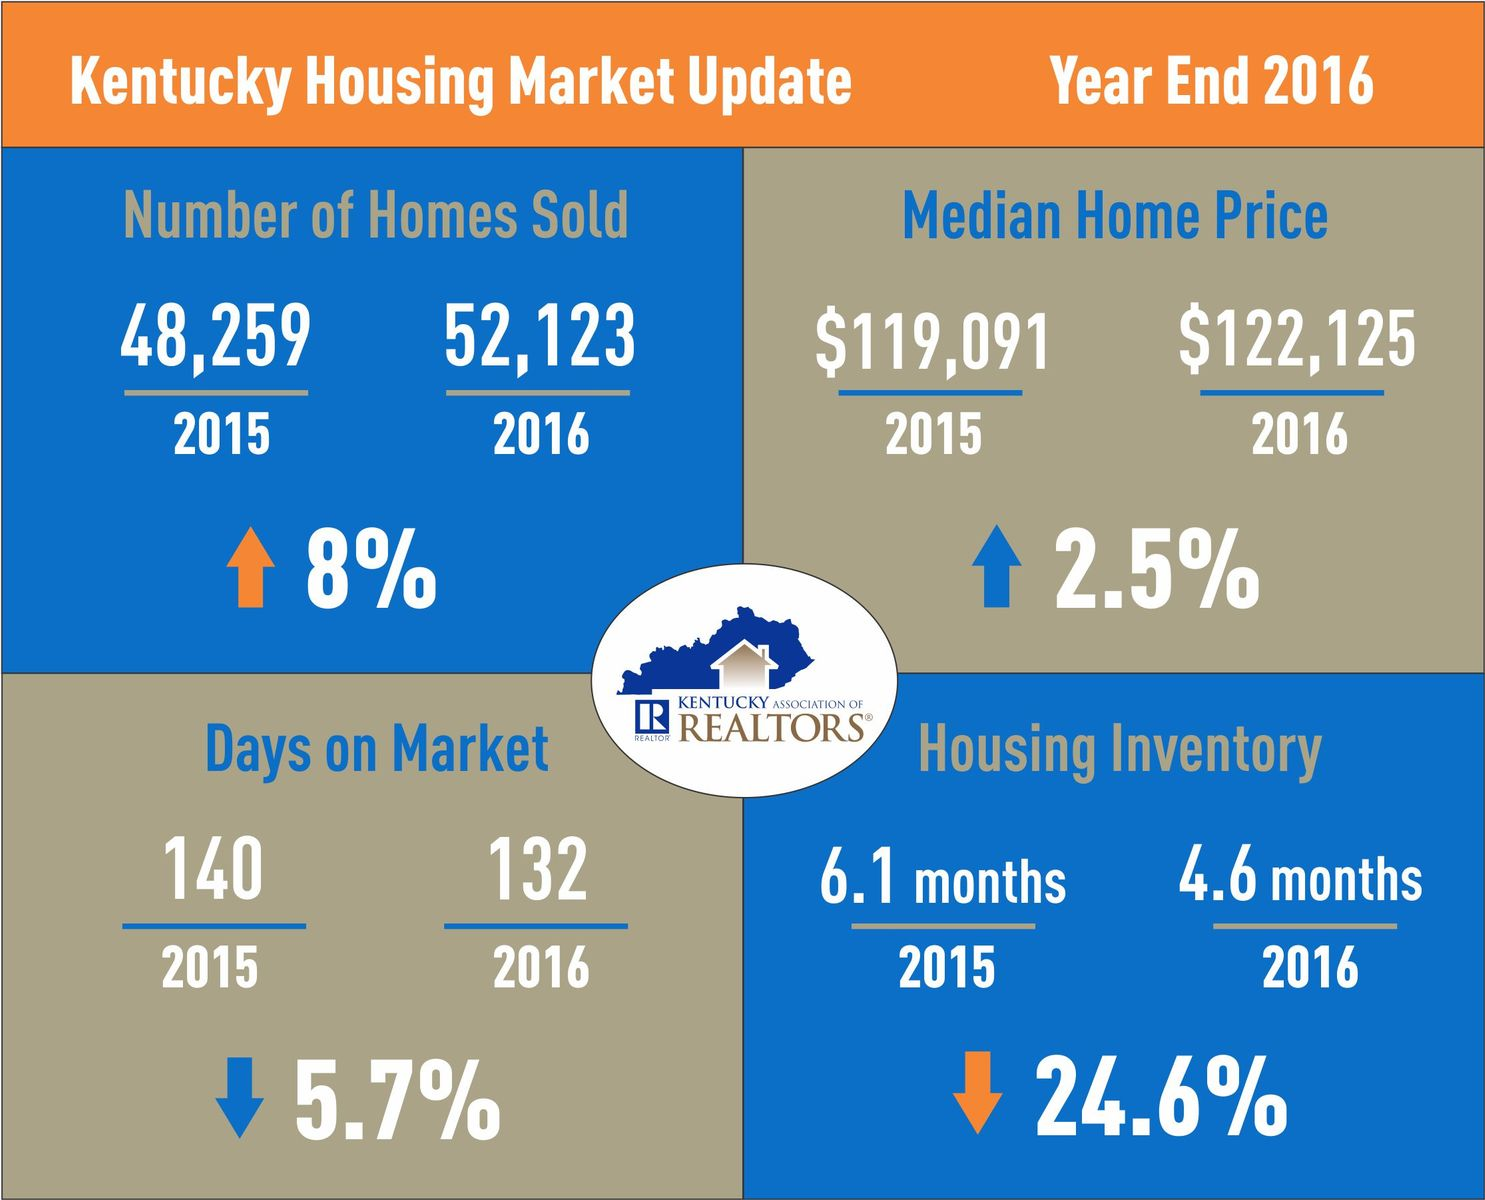 Kentucky Housing Market Update 2016